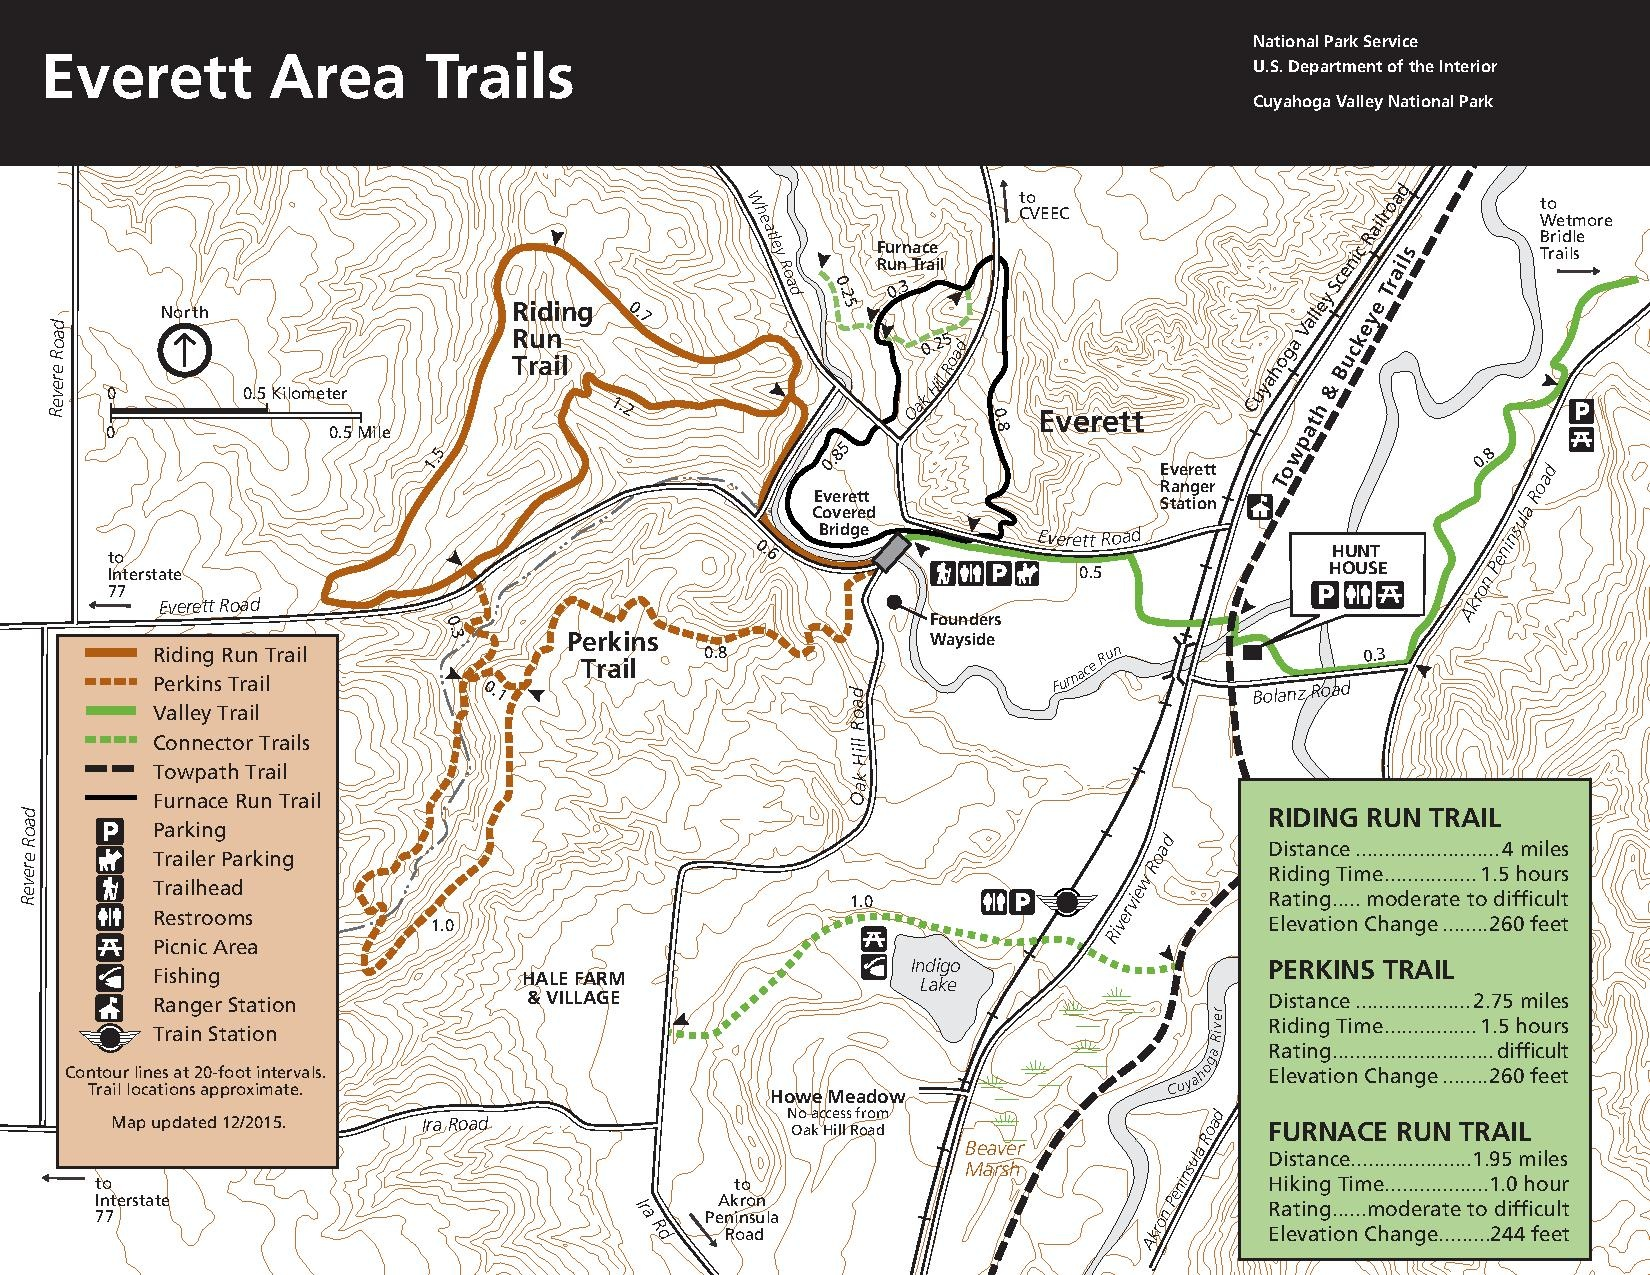 File:NPS cuyahoga-valley-everett-area-trail-map.pdf - Wikimedia Commons